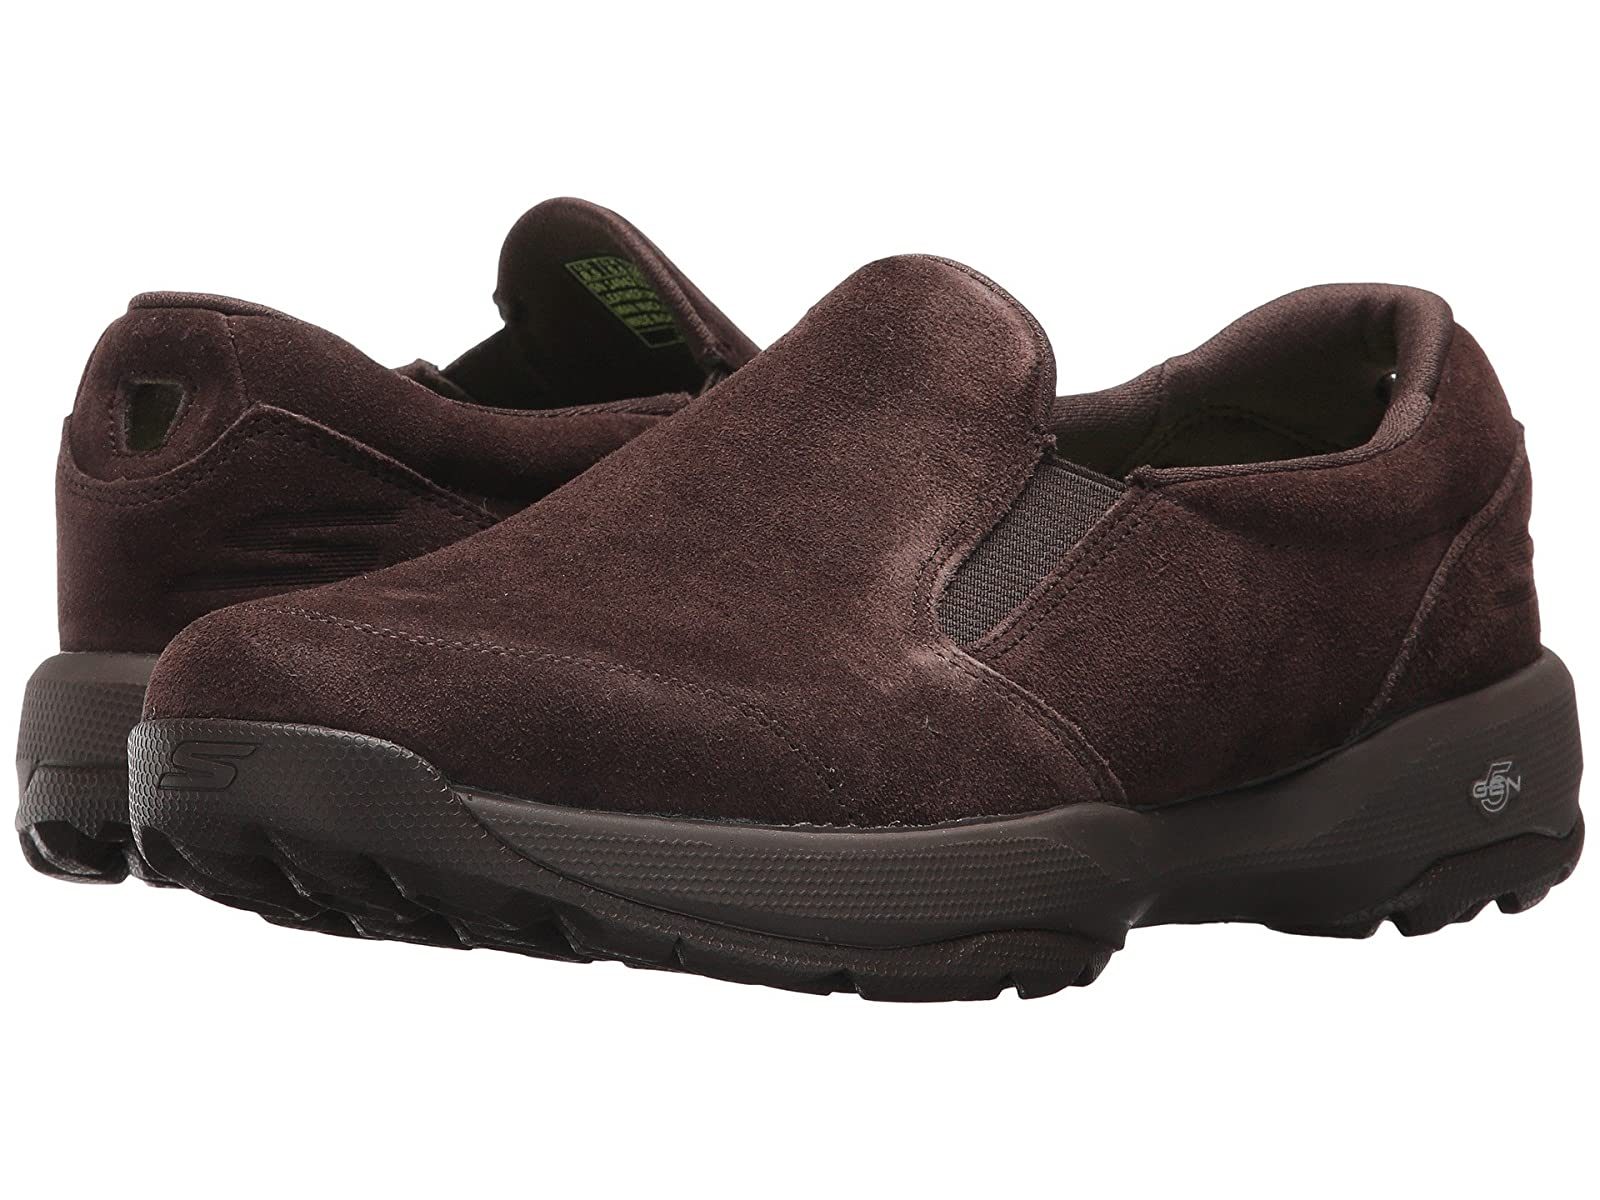 SKECHERS Performance Go Walk Outdoors 2 - TransportCheap and distinctive eye-catching shoes